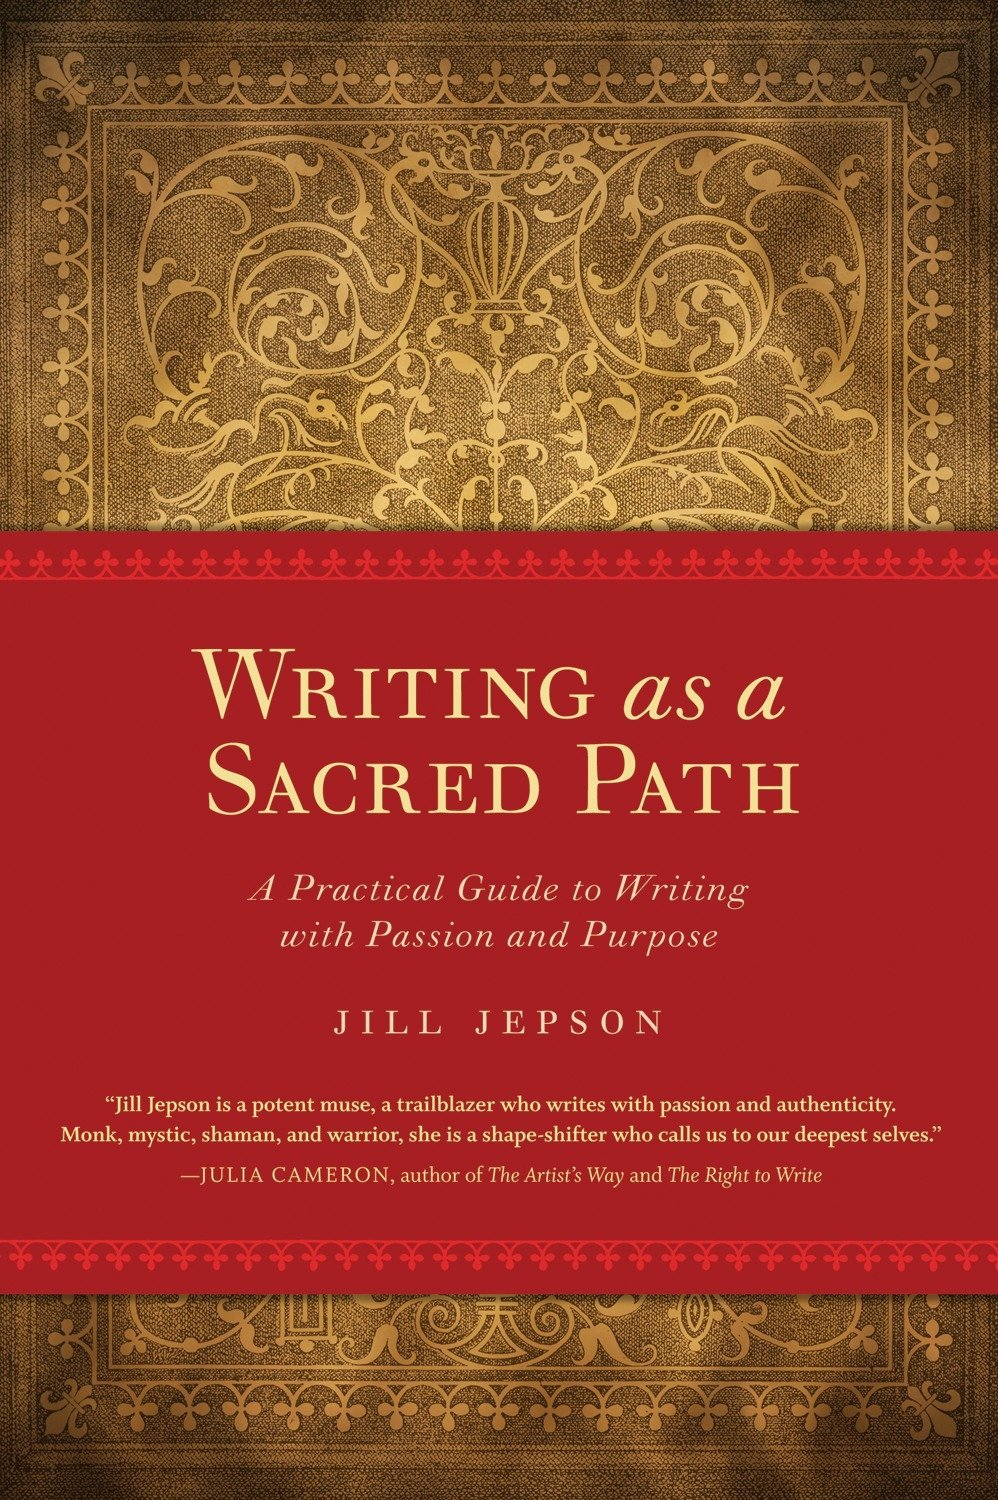 Writing as a Sacred Path: A Practical Guide to Writing with Passion and  Purpose: Jill Jepson: 9781587613258: Amazon.com: Books